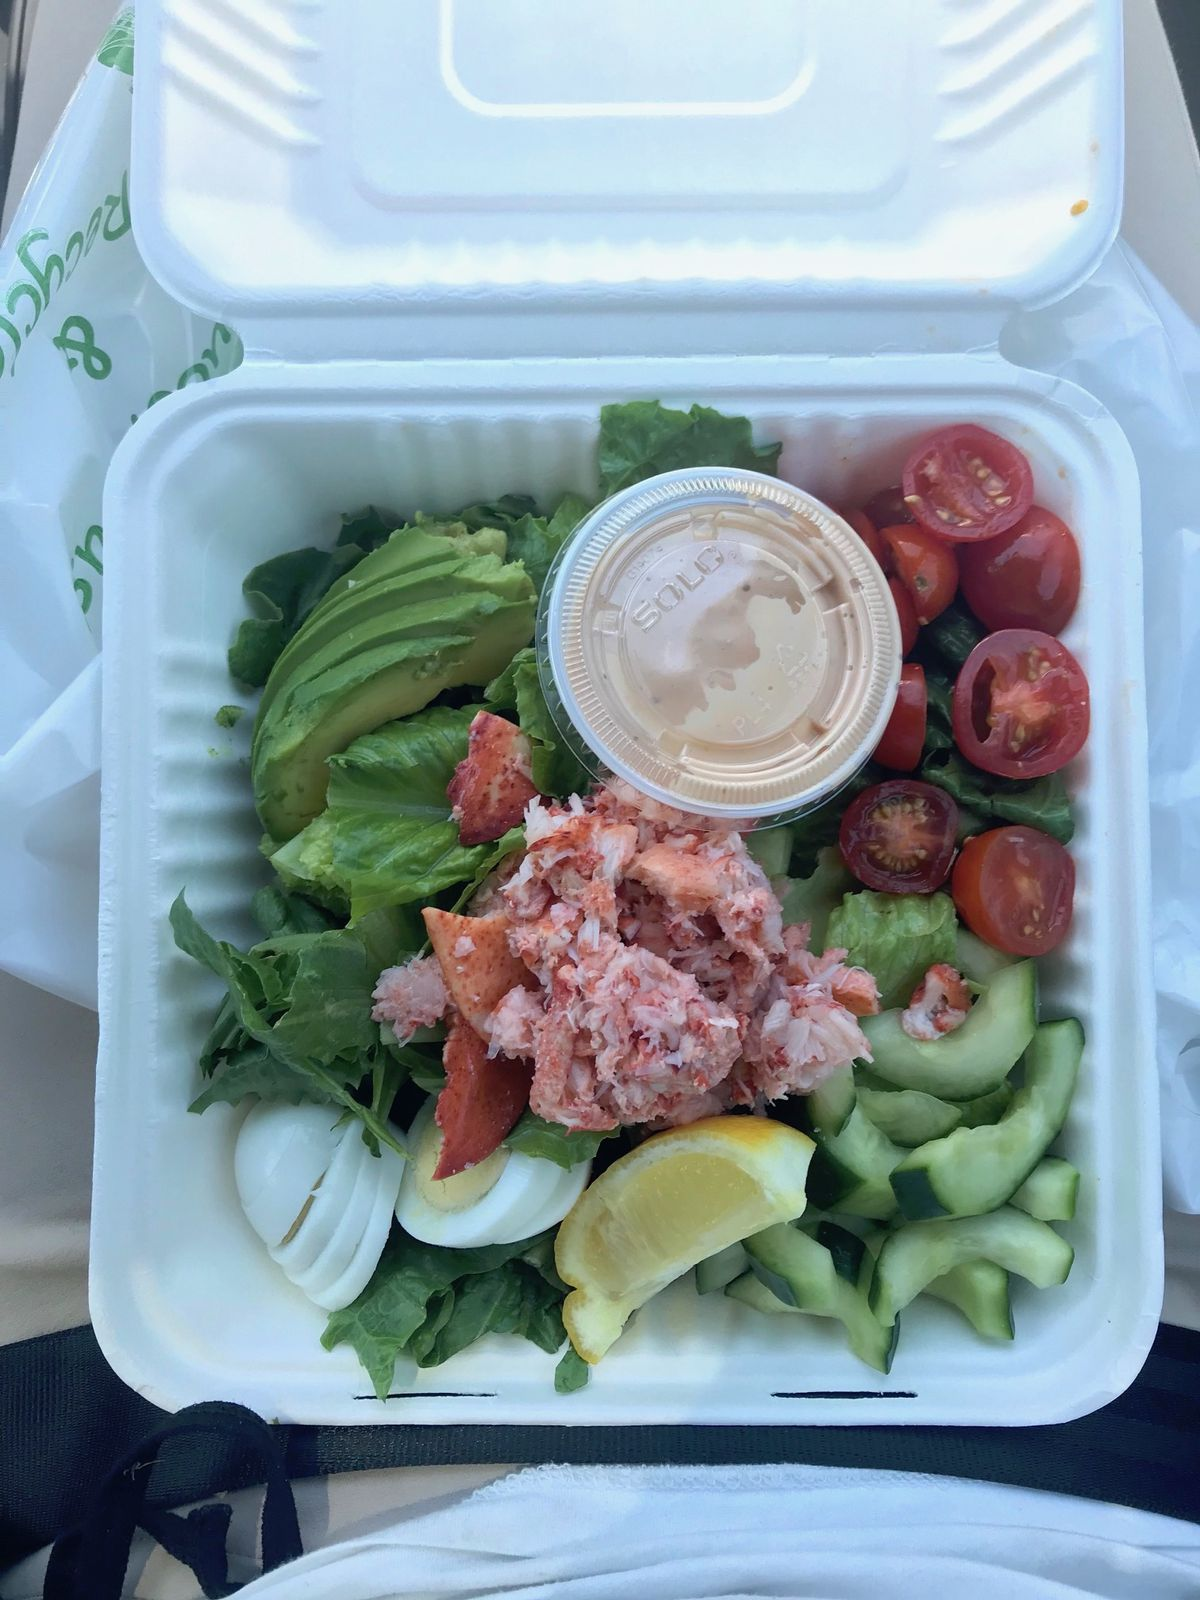 Lobster Louie from Old Port Lobster Shack